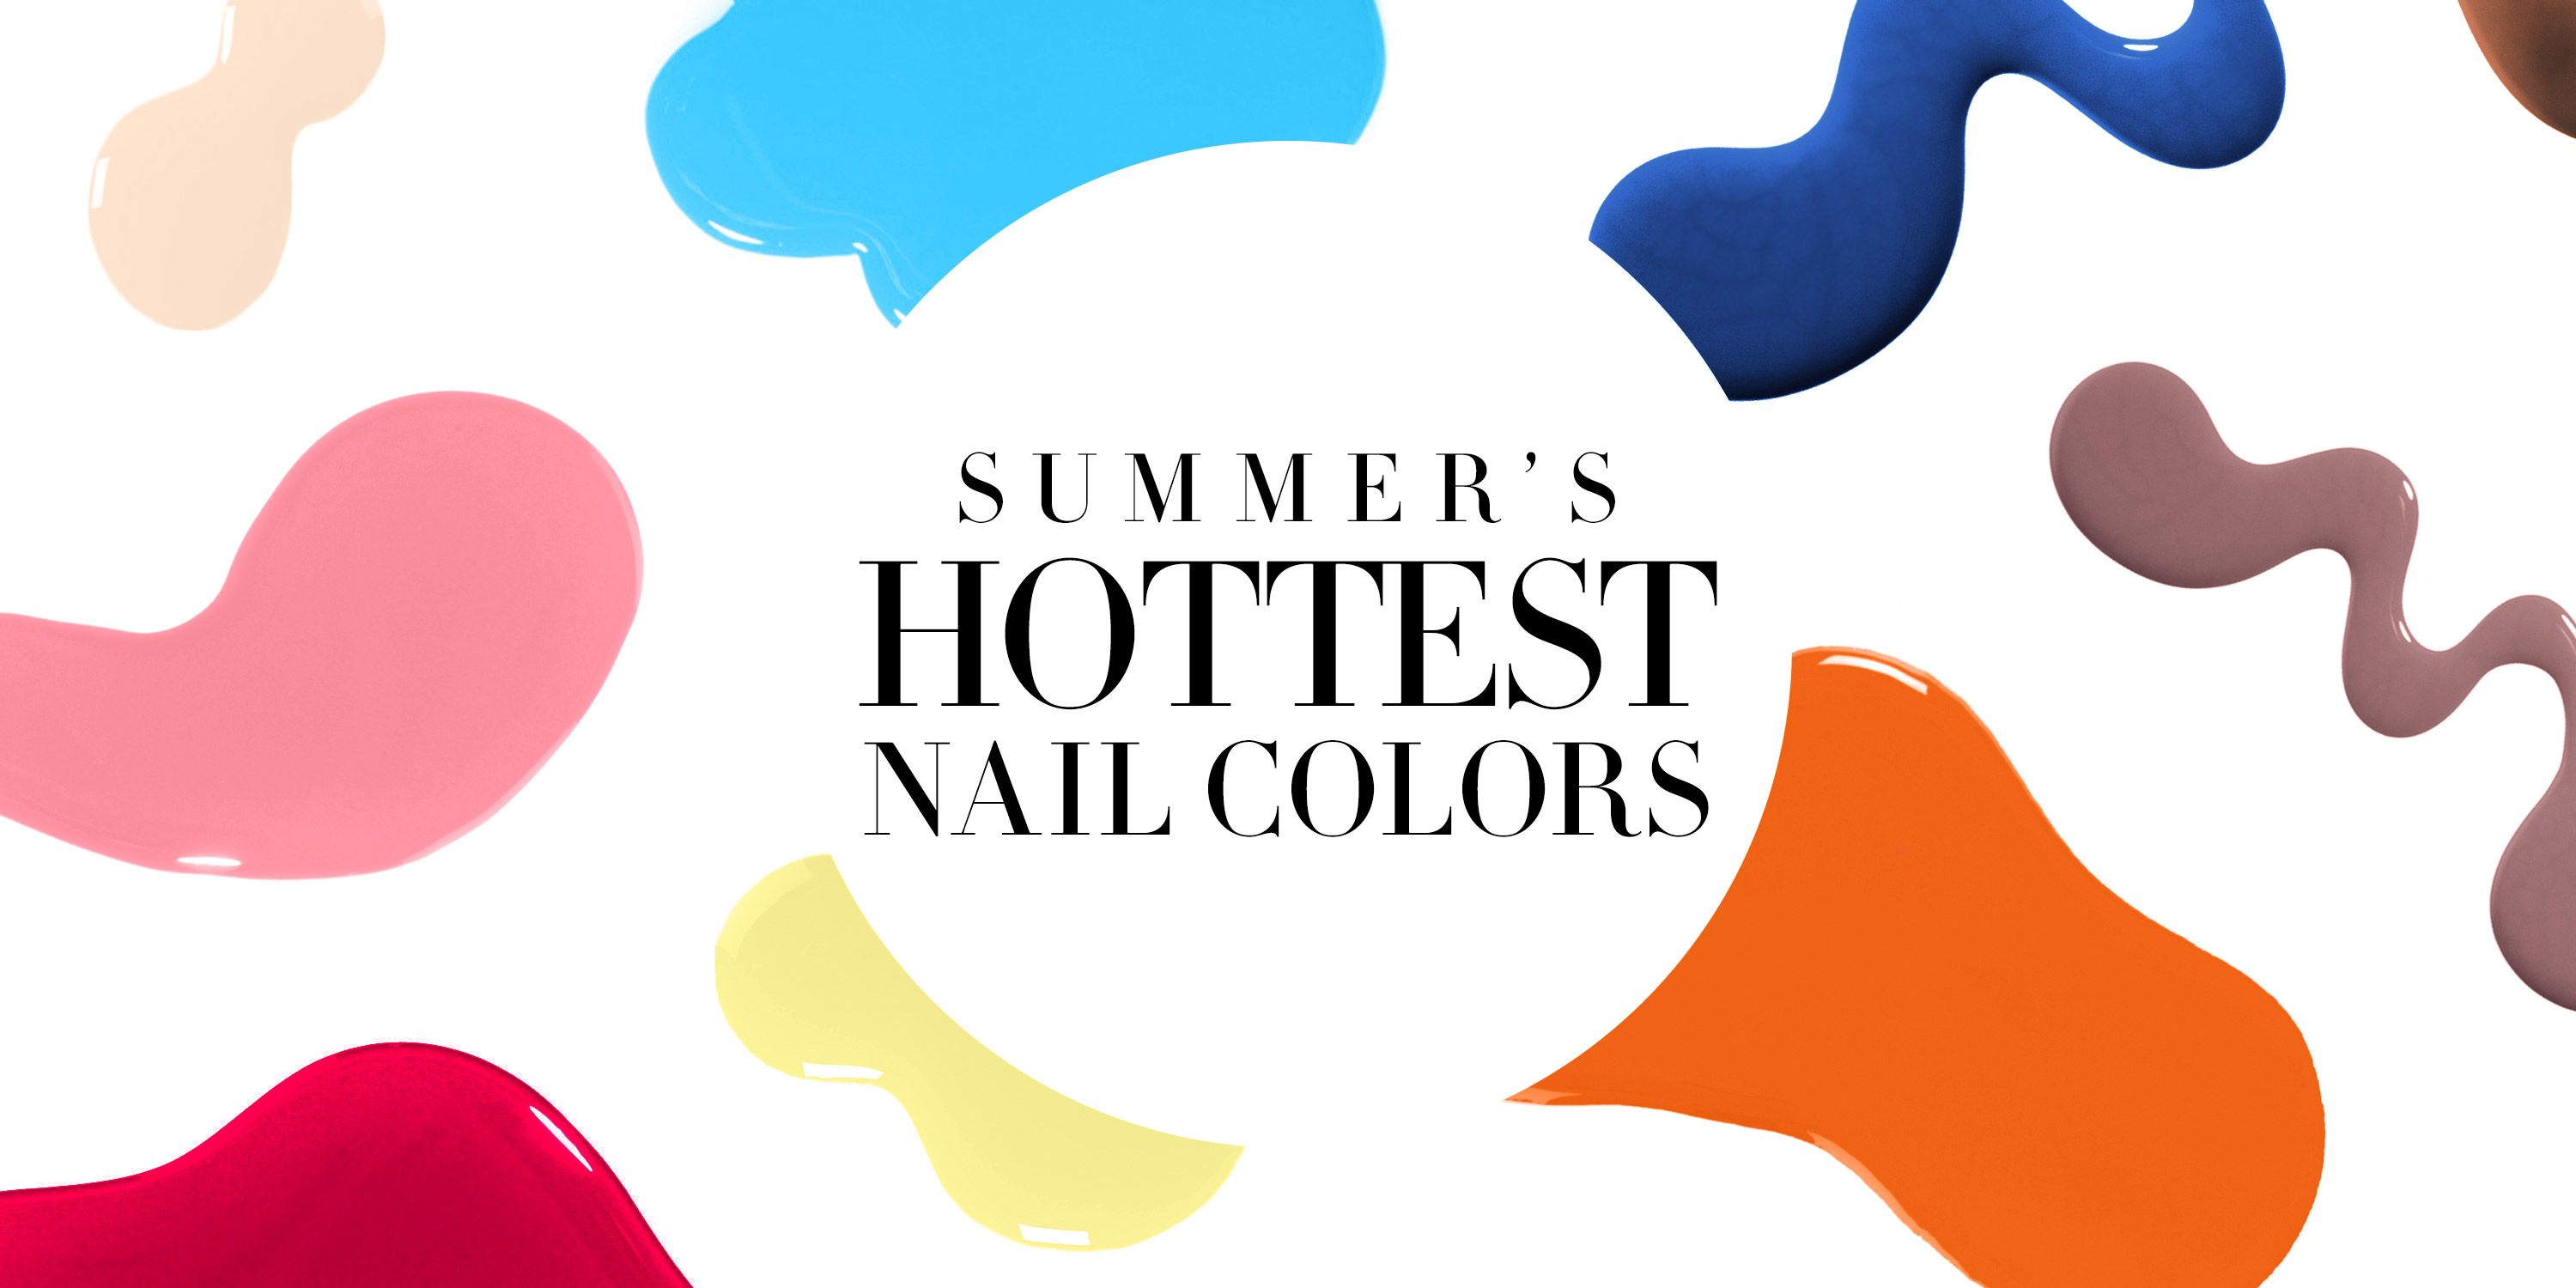 24 Spring Nail Colors for 2019 - Nail Polish You'll Be ...